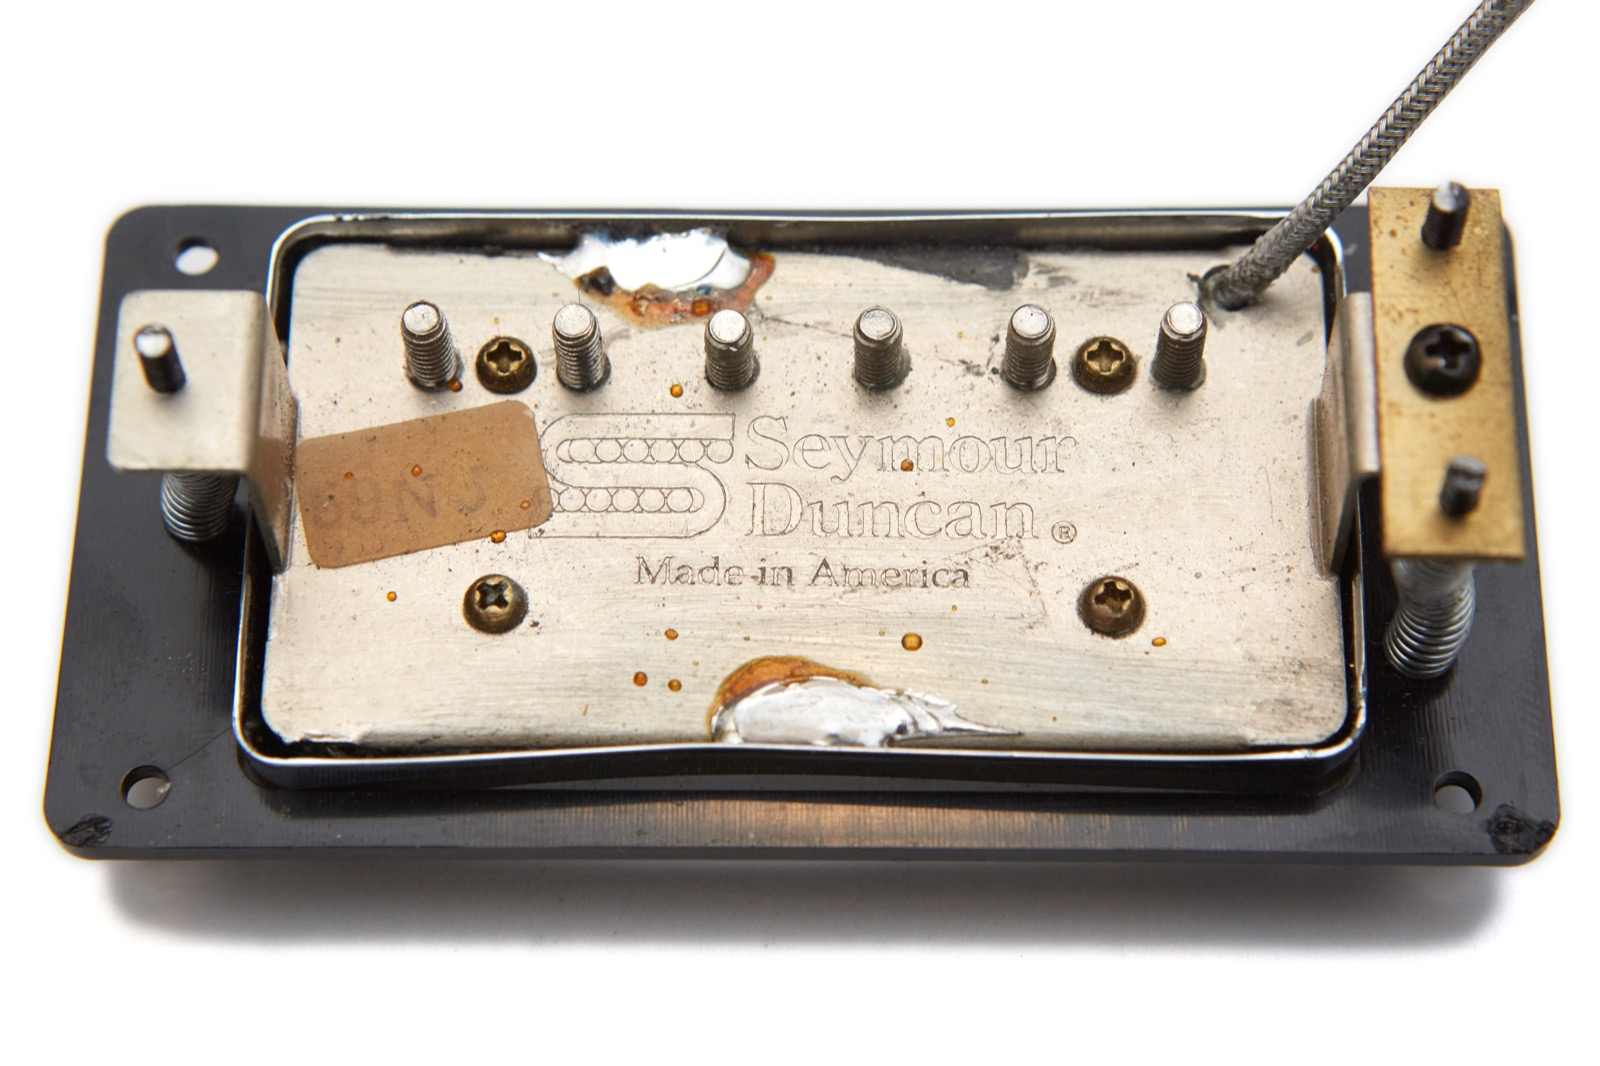 Guild Full Sized Hb1 And Sd1 Pickup Variations Gads Ramblings Fender Wide Range Humbucker Wiring Diagram The Other Is A Sd 59 Neck Wound By Same Person I Believe Since As Best Can Tell That Also J At End Of